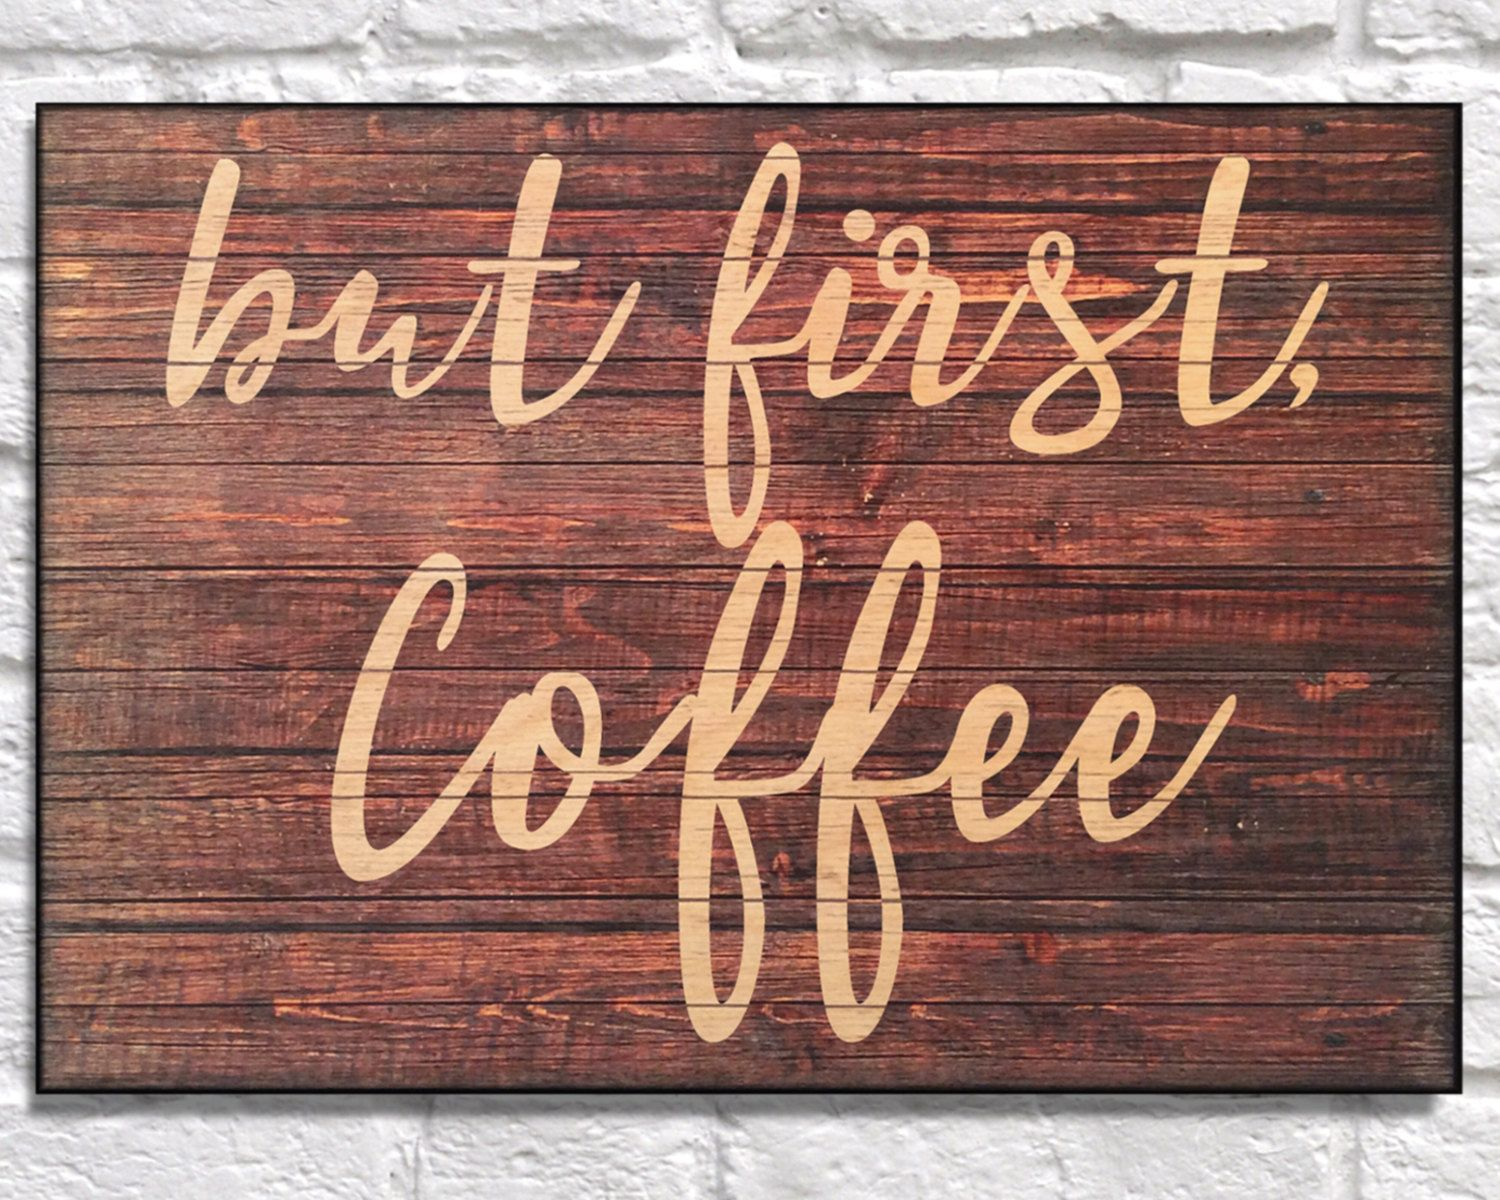 But first coffee sign wood art Typography Kitchen Wood wall art Birthday gift for Husband Christmas Gift for her Panel effect wood print by Woodprintz on Etsy